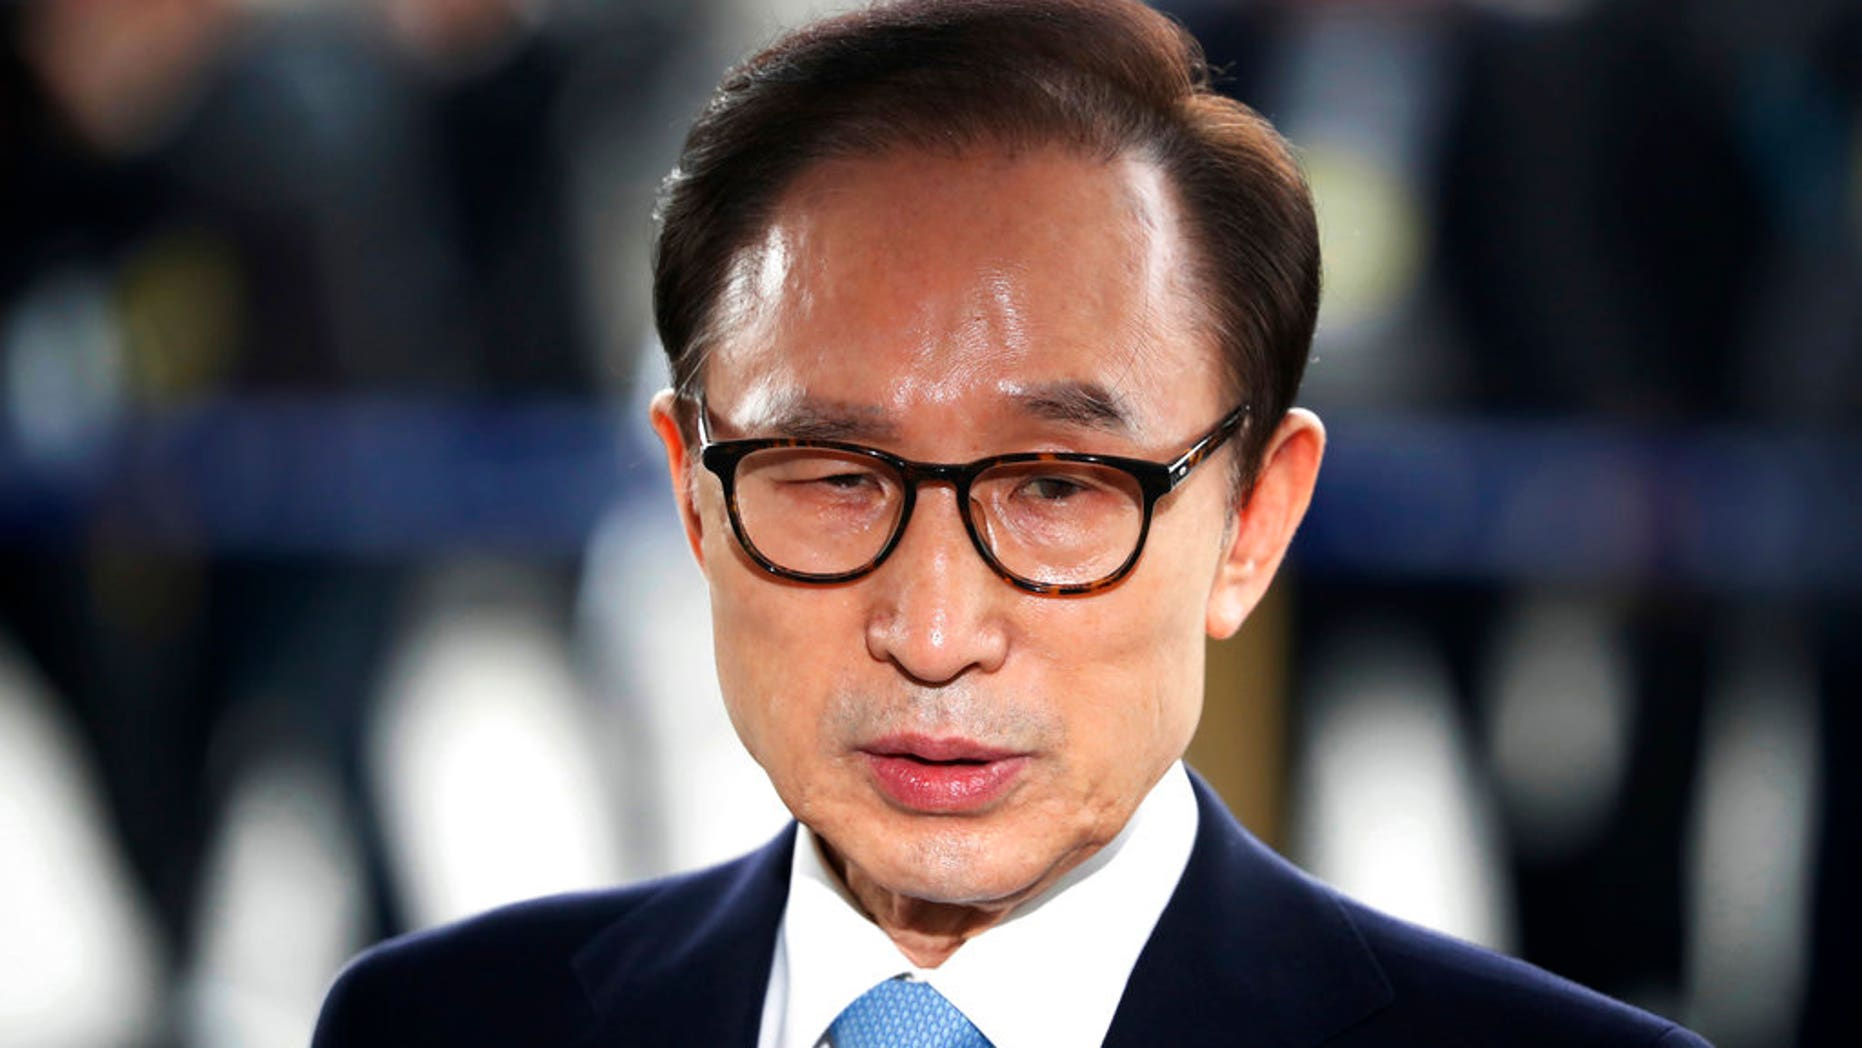 South Korea′s ex-President Lee Myung-bak jailed for 15 years